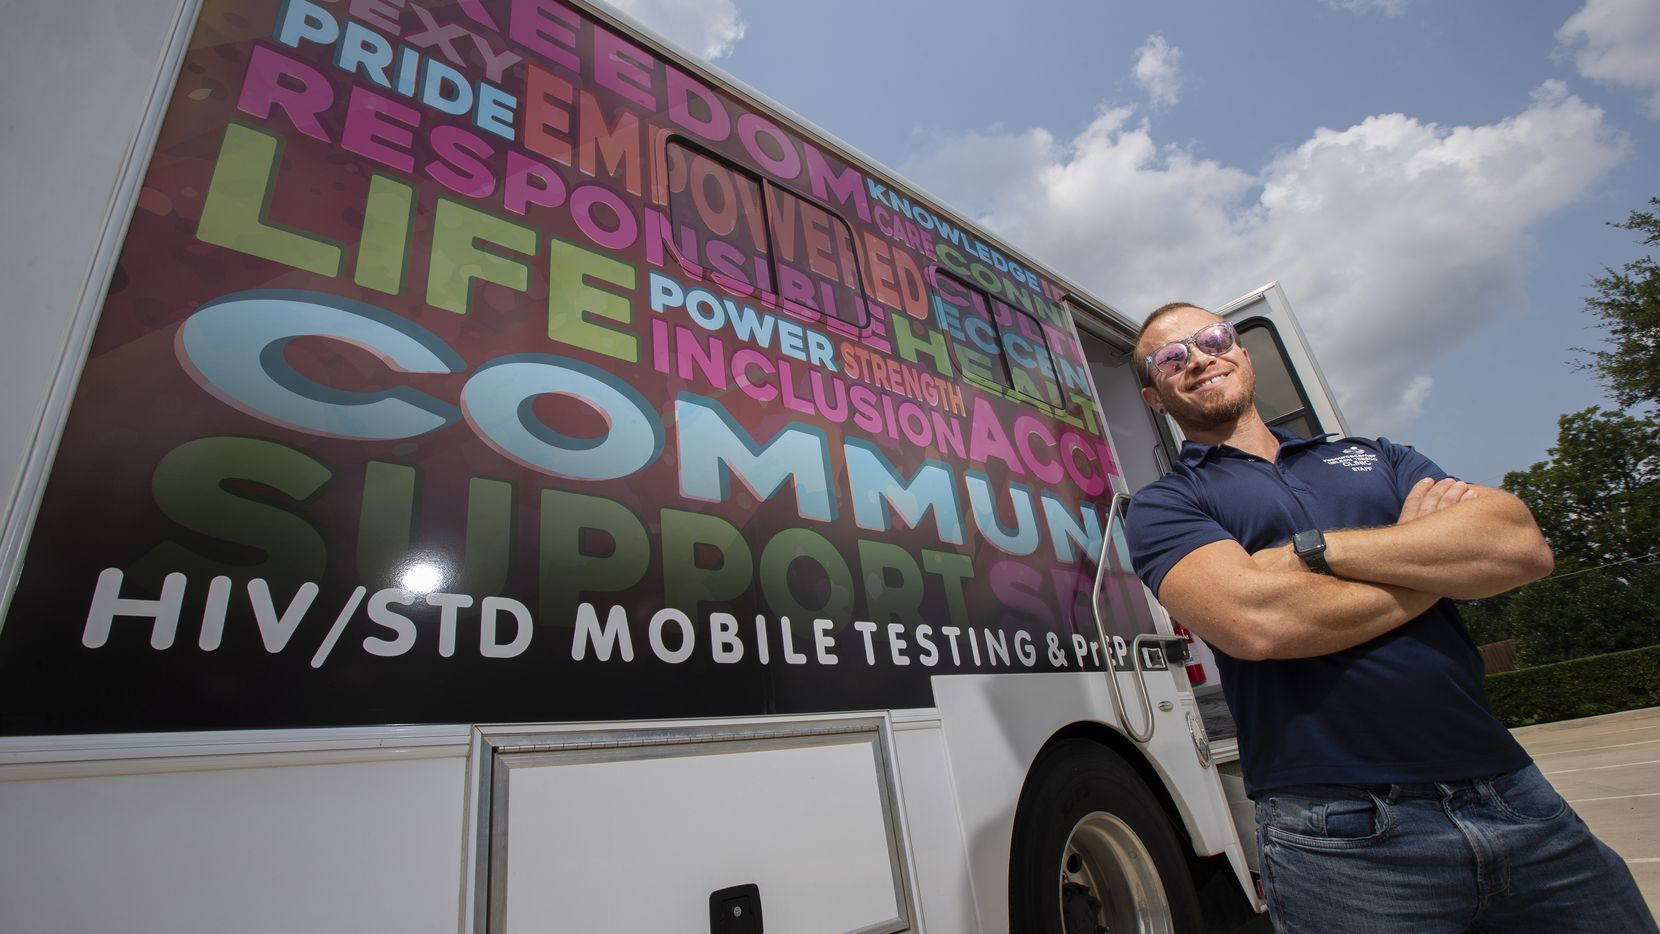 JP Cano, prevention services director at Resource Center, stands outside the SexyHealth HIV testing mobile unit developed by the Dallas center.